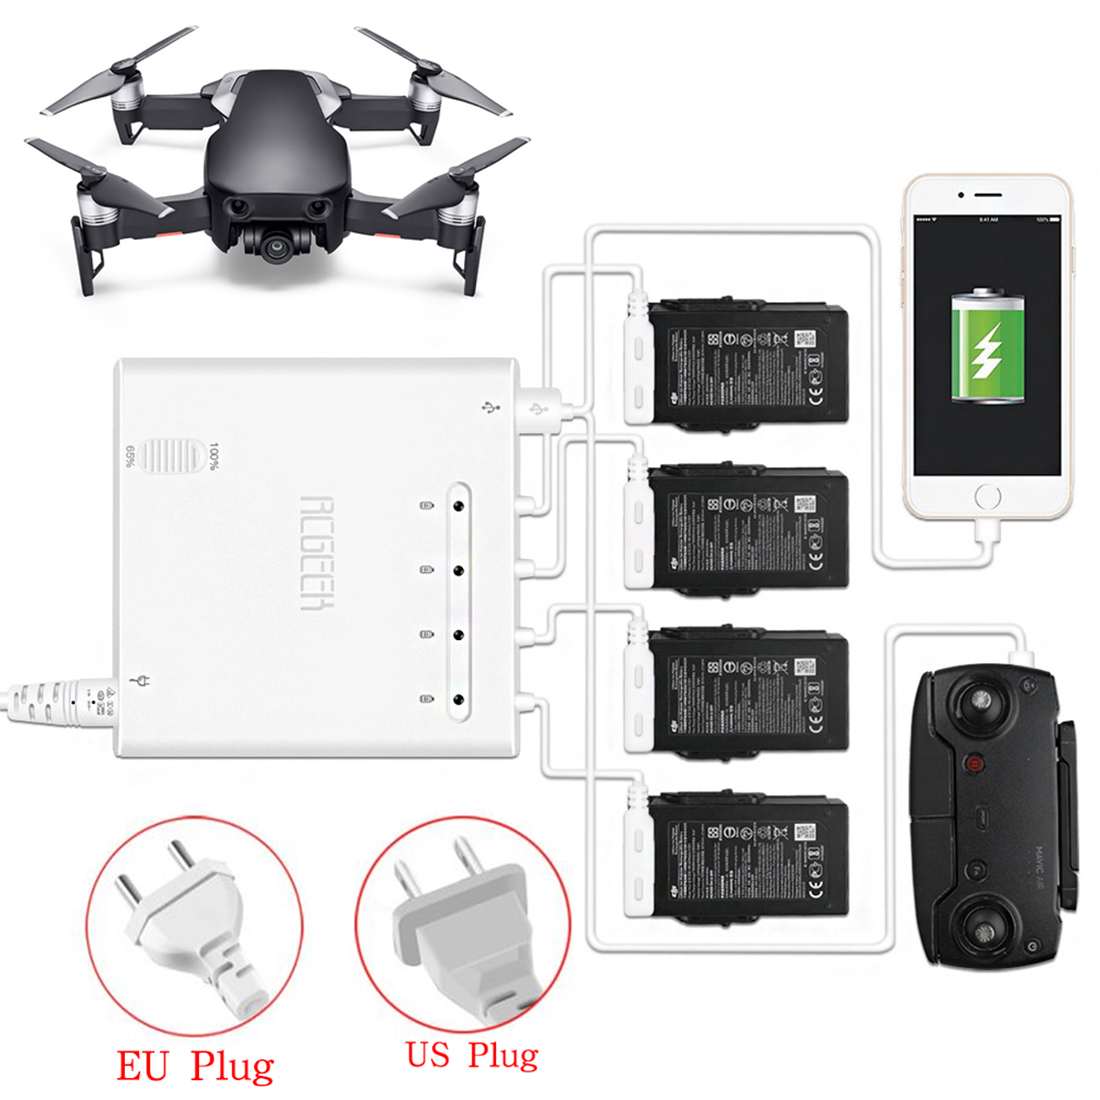 6 in 1 Quick Charge Intelligent Charger with 2 Charging Modes for DJI MAVIC AIR - US Plug6 in 1 Quick Charge Intelligent Charger with 2 Charging Modes for DJI MAVIC AIR - US Plug